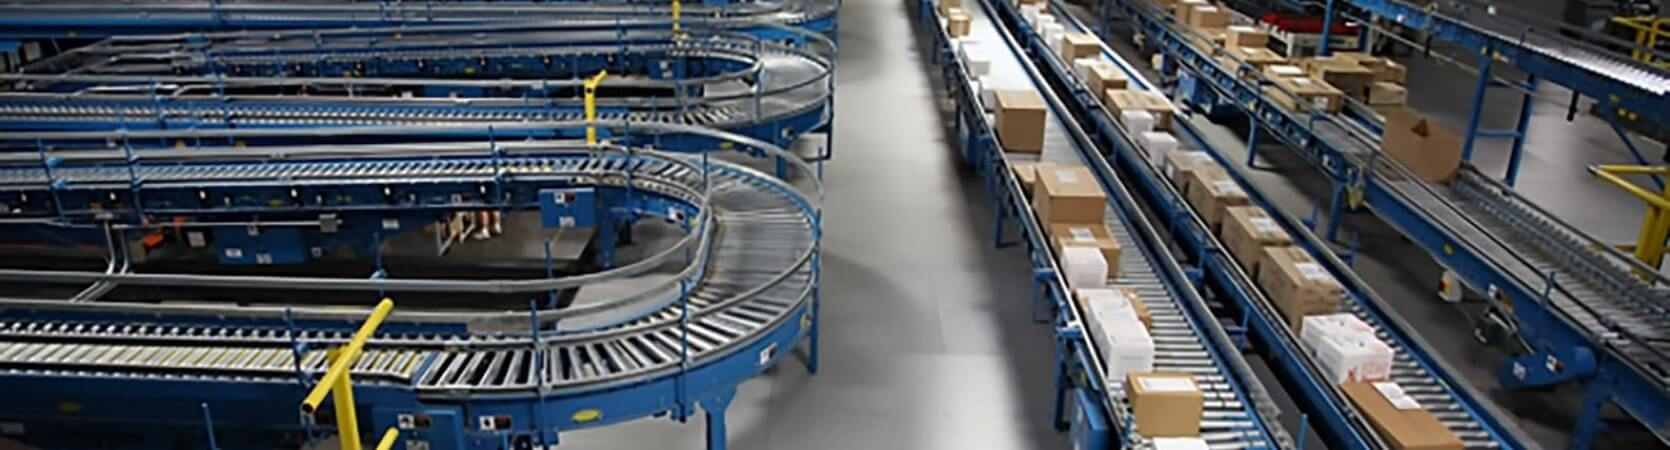 An automation parcel conveyor system design that shows that EAD is now a Rockwell Recognized Integrator